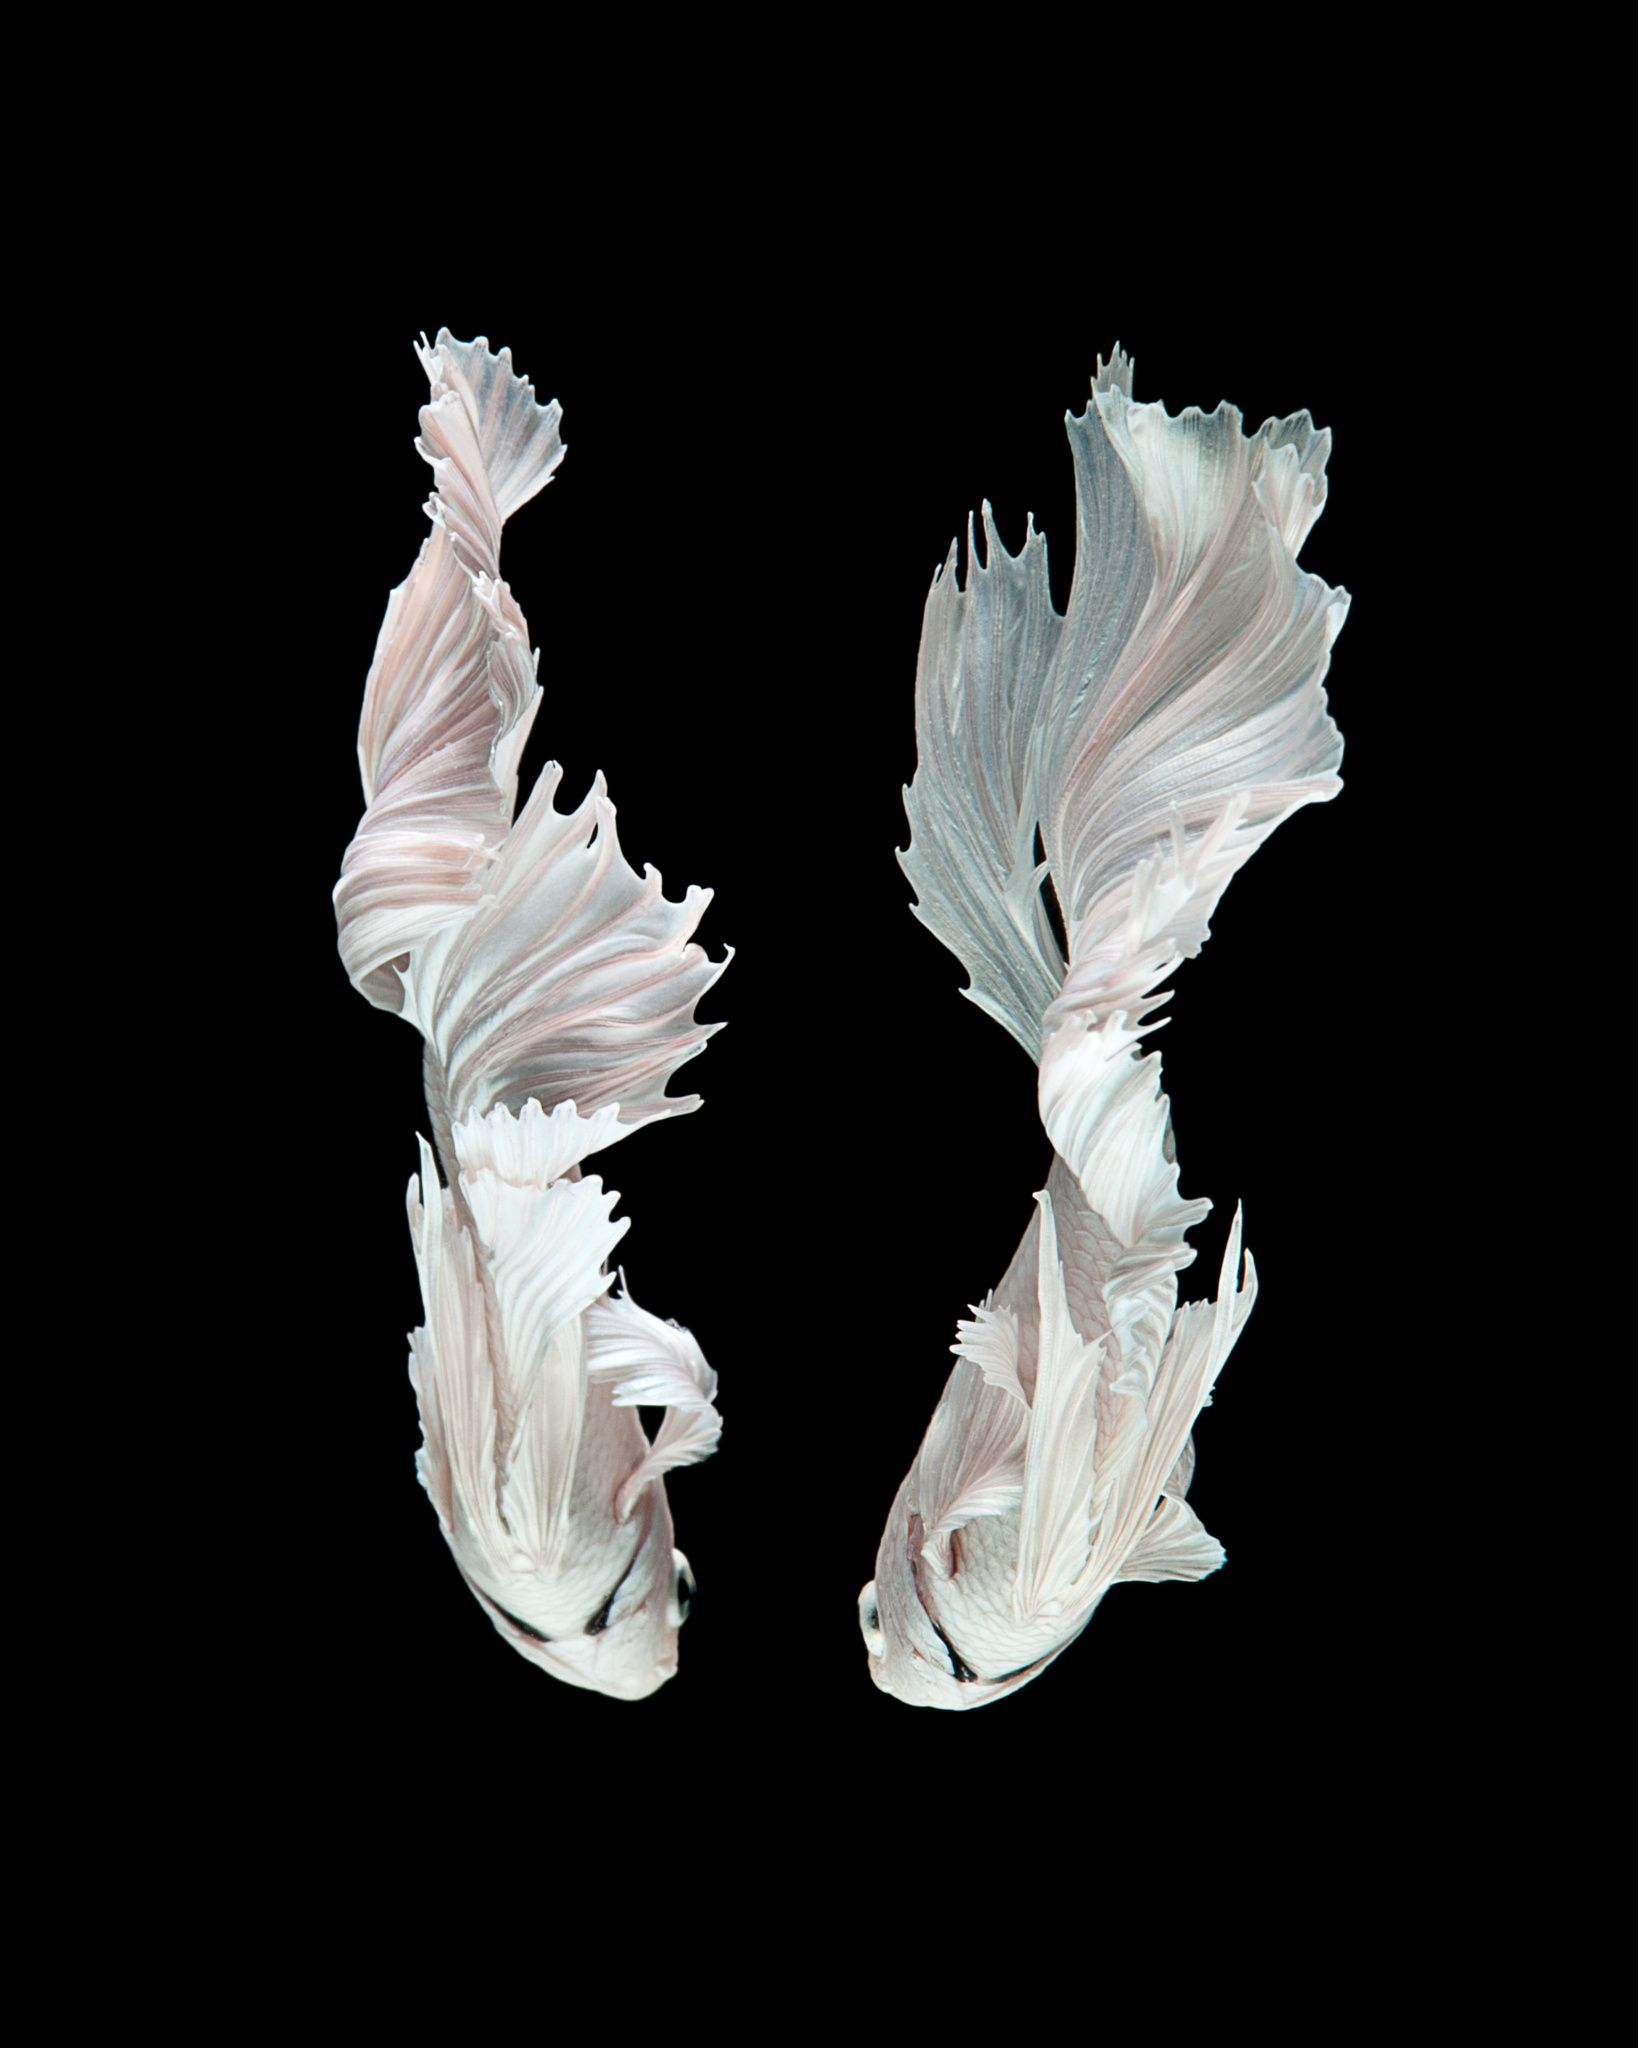 Fairy Tail Capture the moving moment of white siamese fighting fish